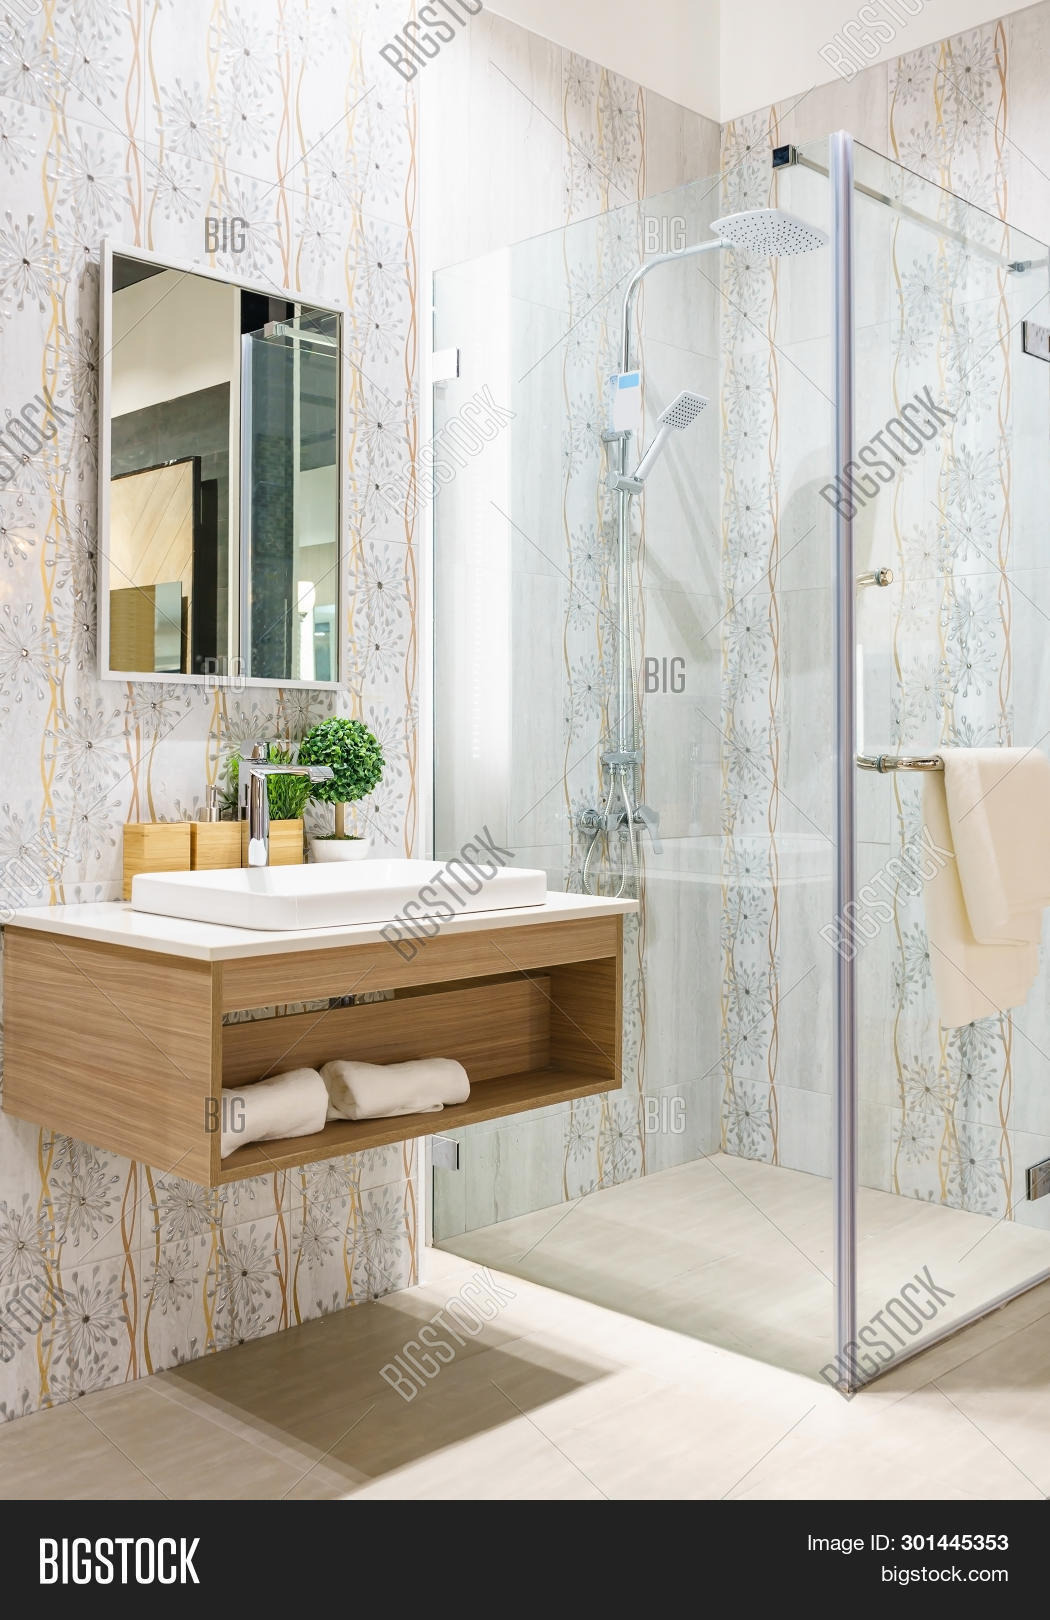 stock photo spacious and bright modern bathroom interior with white walls, a shower cabin with glass wall, a toi